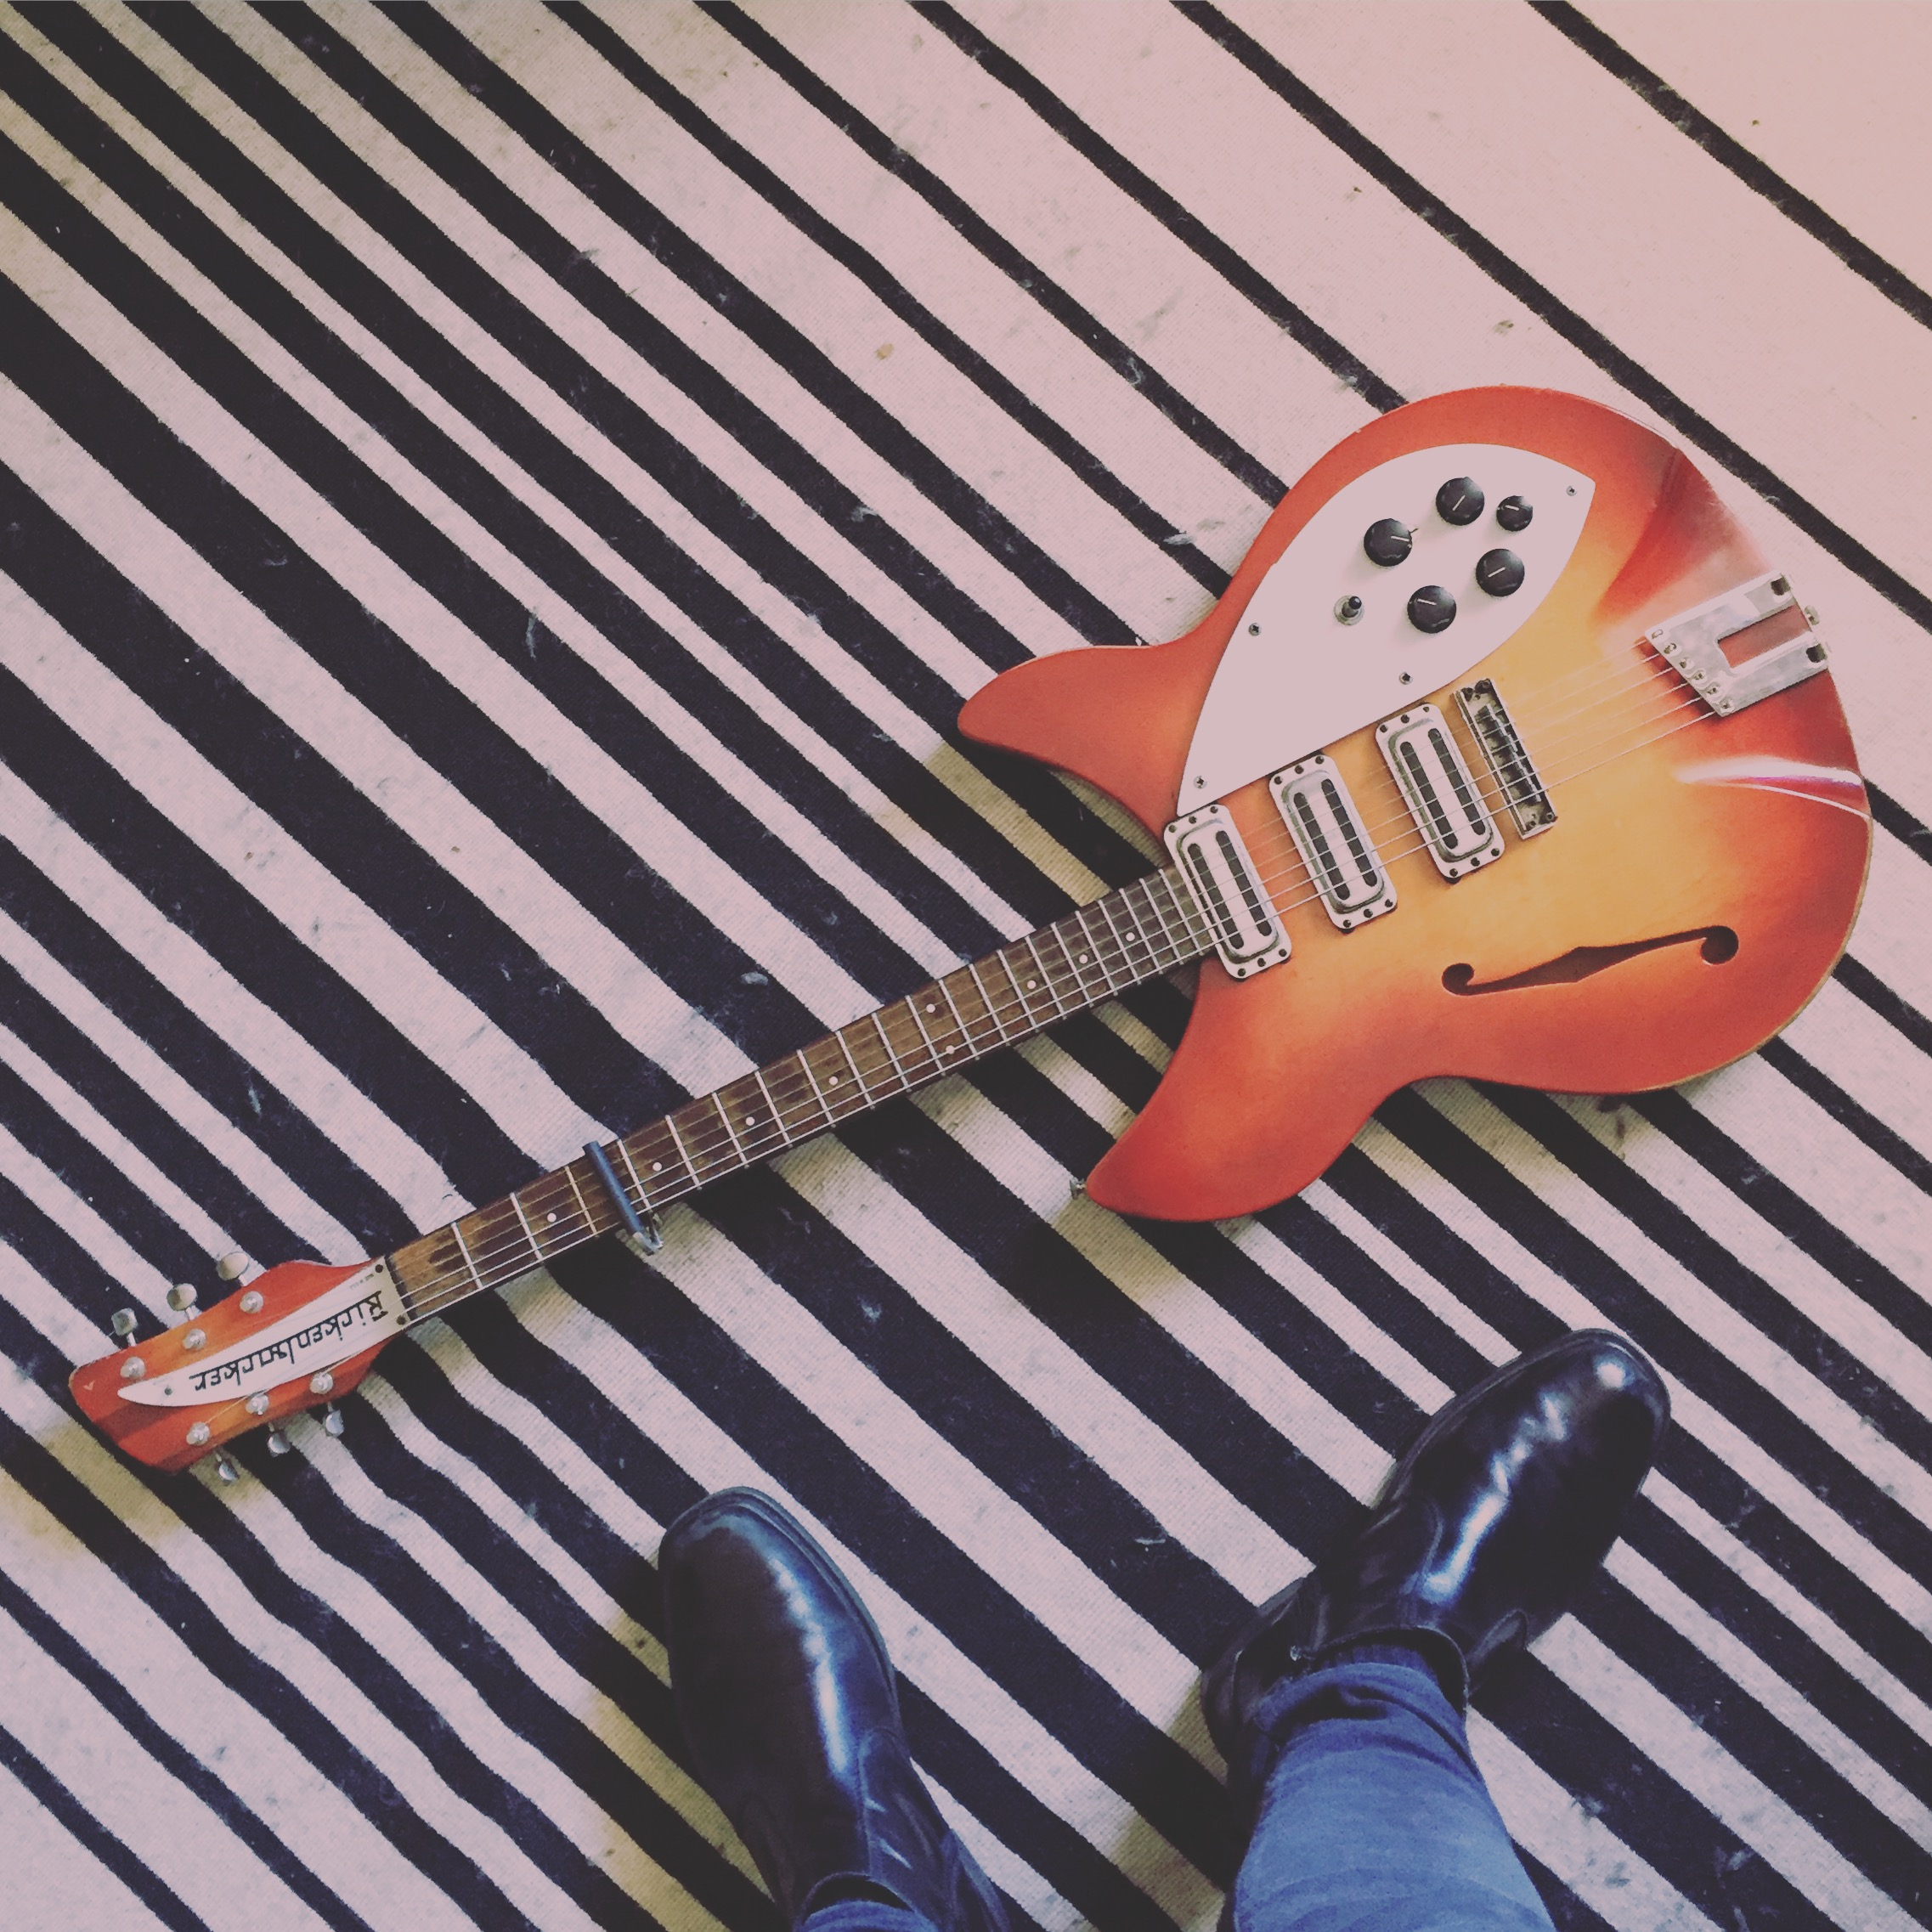 Favourite guitar is Rickenbacker - Love Fenders too. And Guild. And Vox guitars.